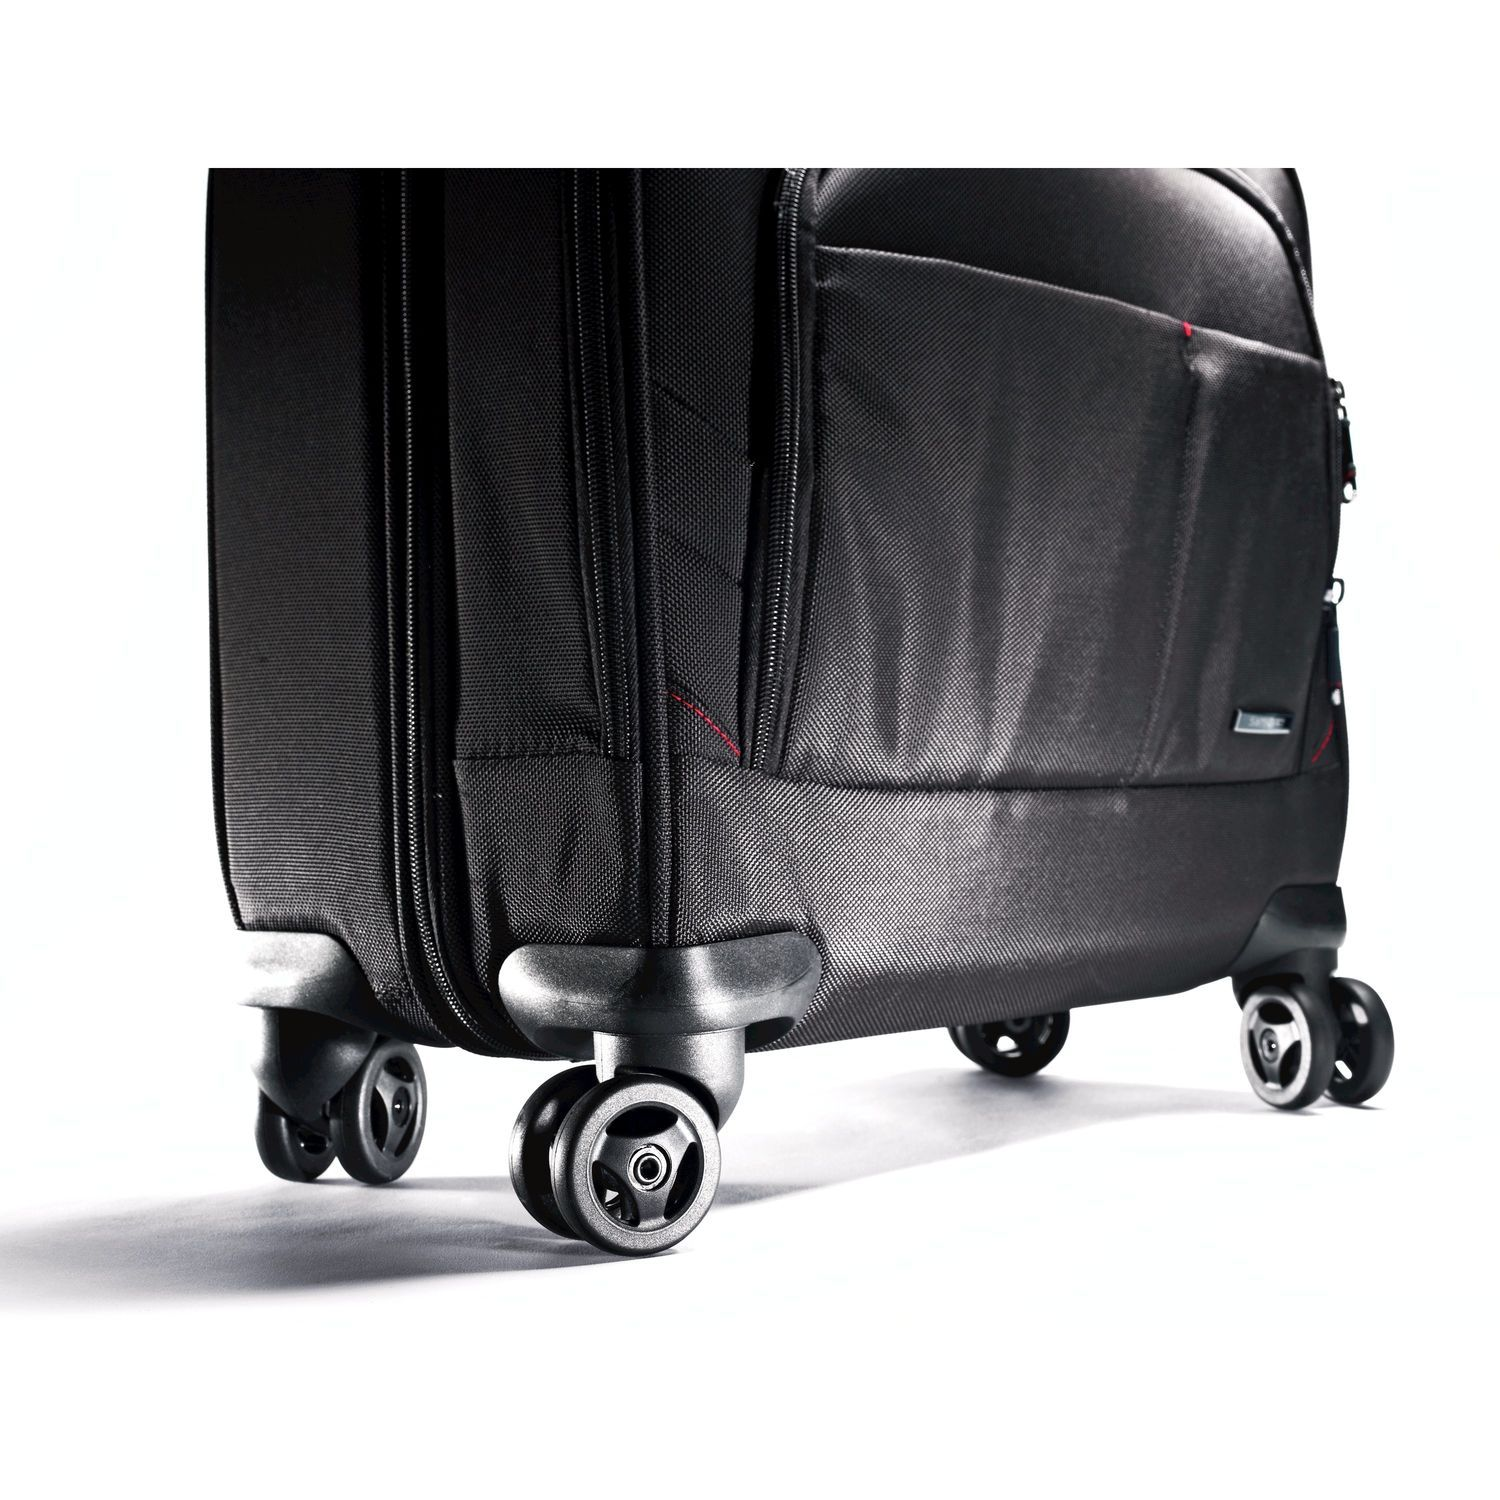 Samsonite Xenon 2 Spinner Mobile Office Travel Accessories Shop